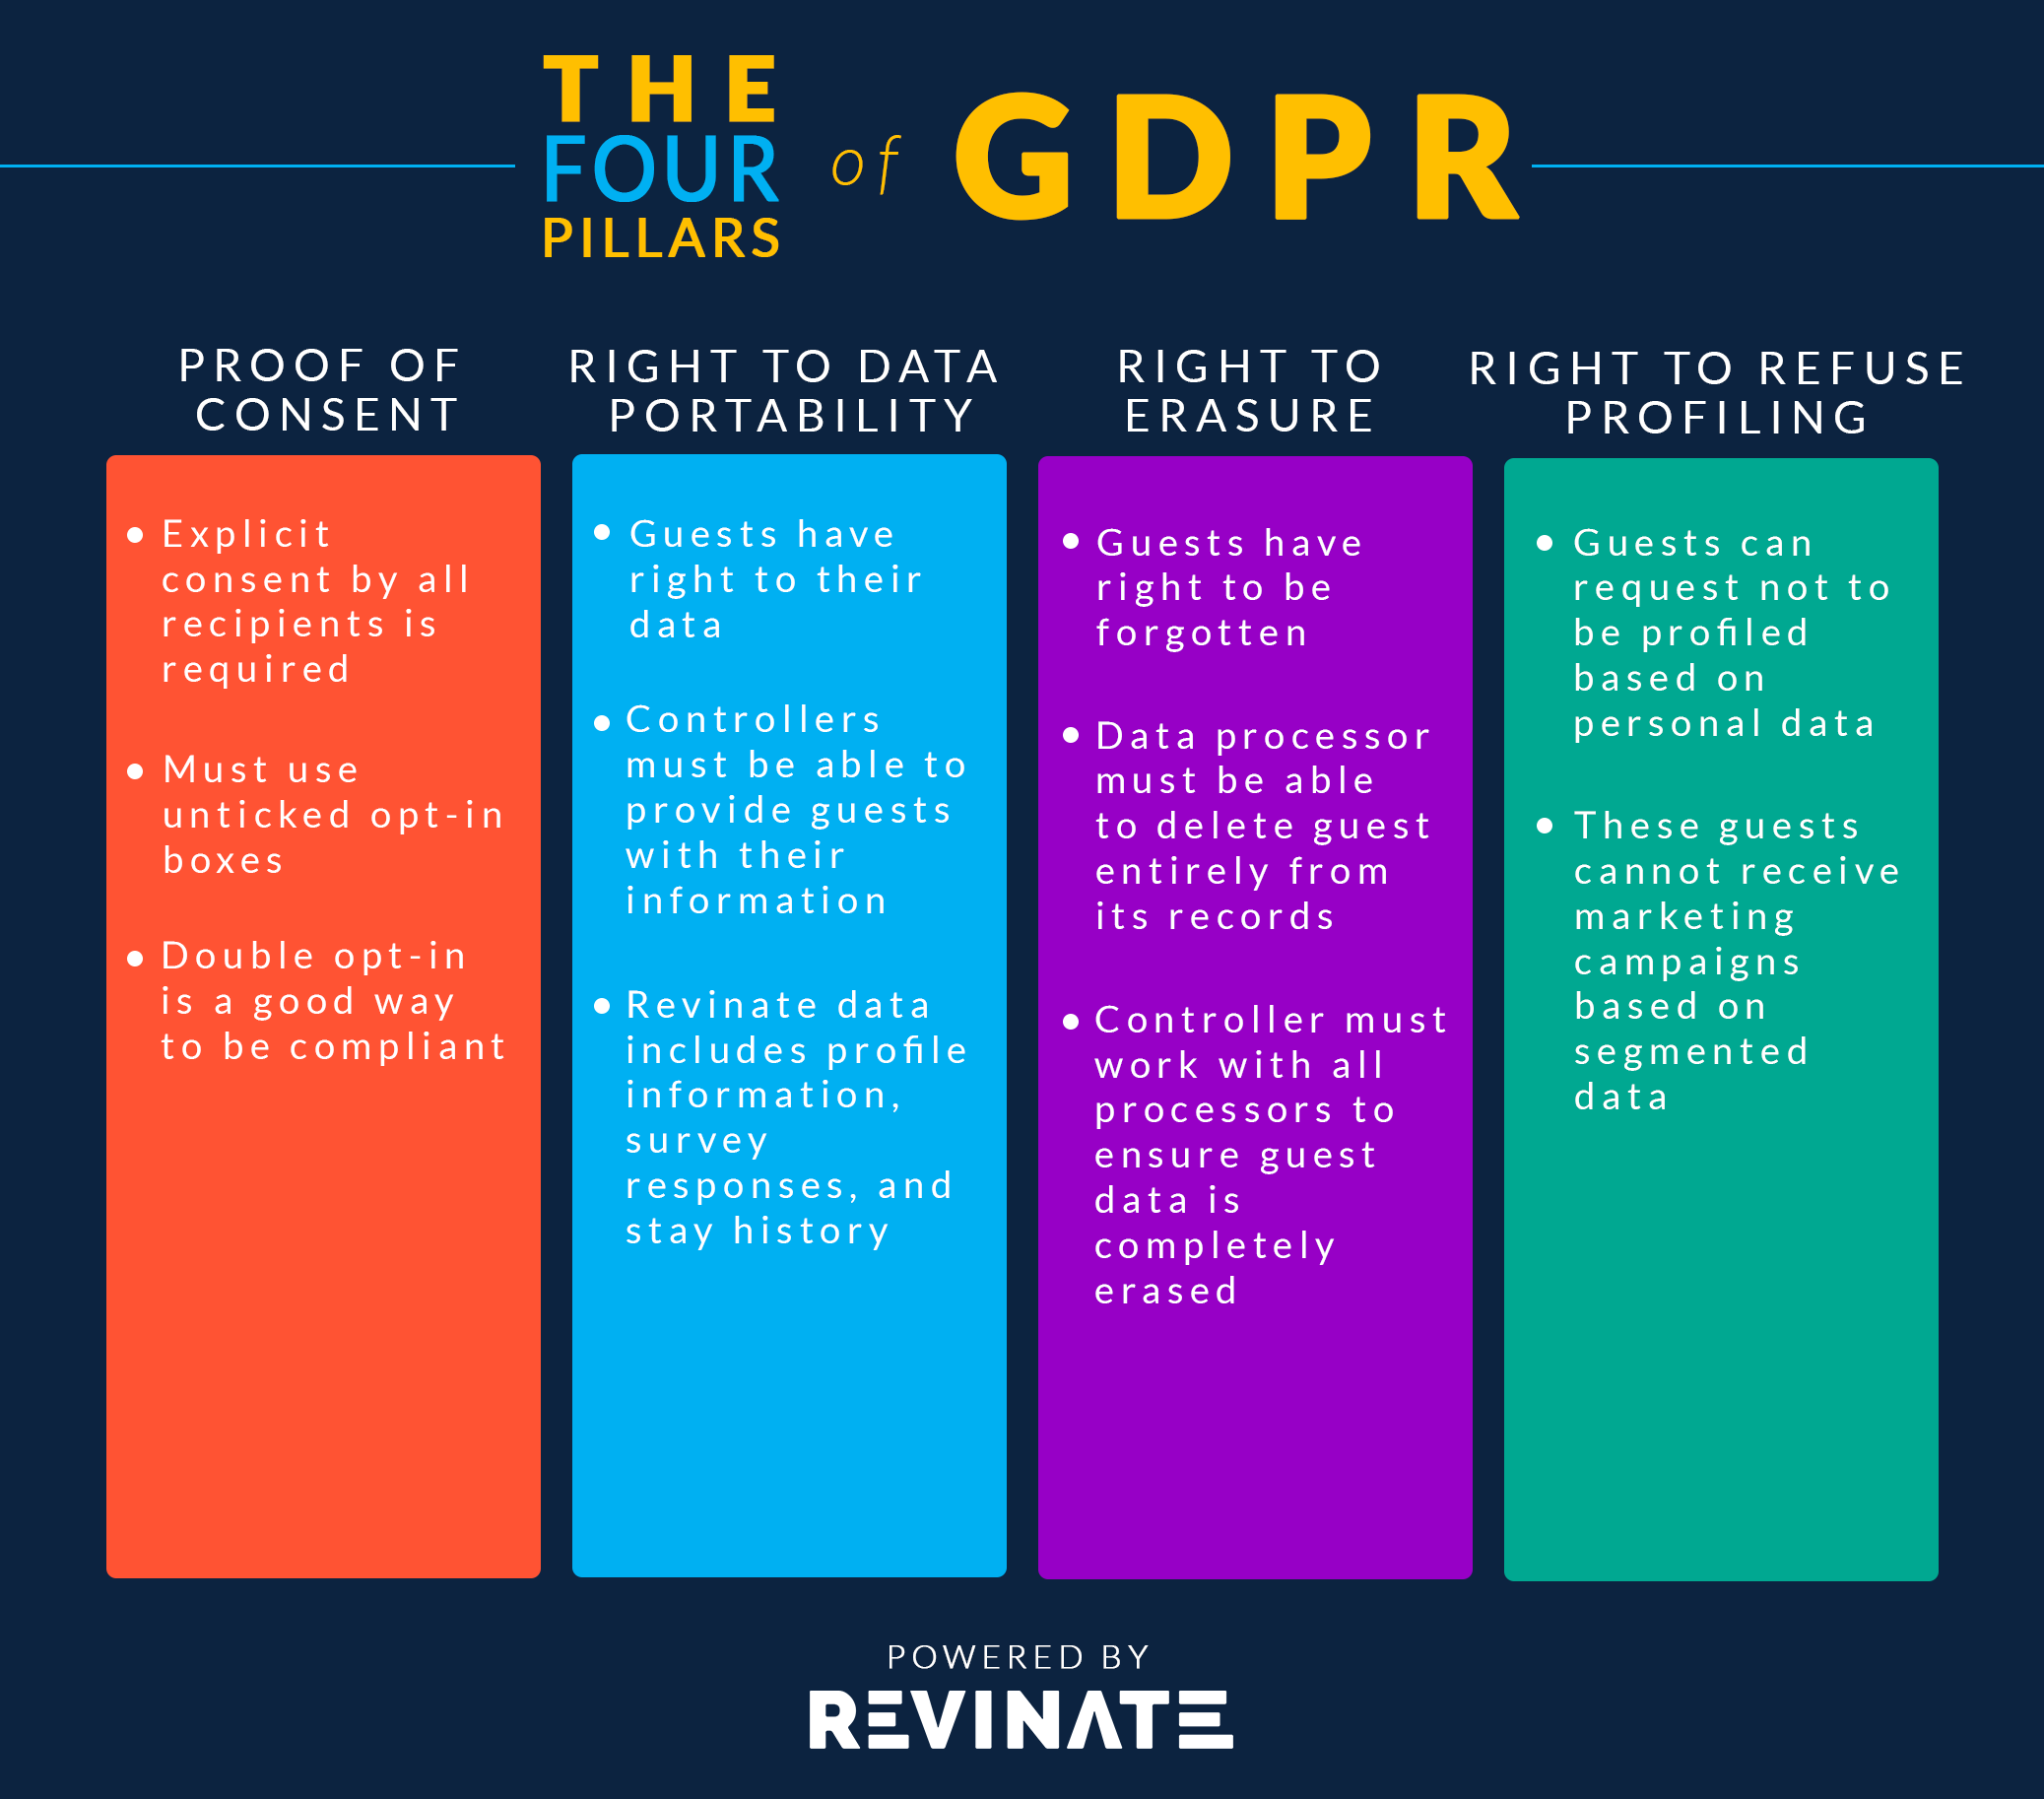 the four pillars of GDPR infographic